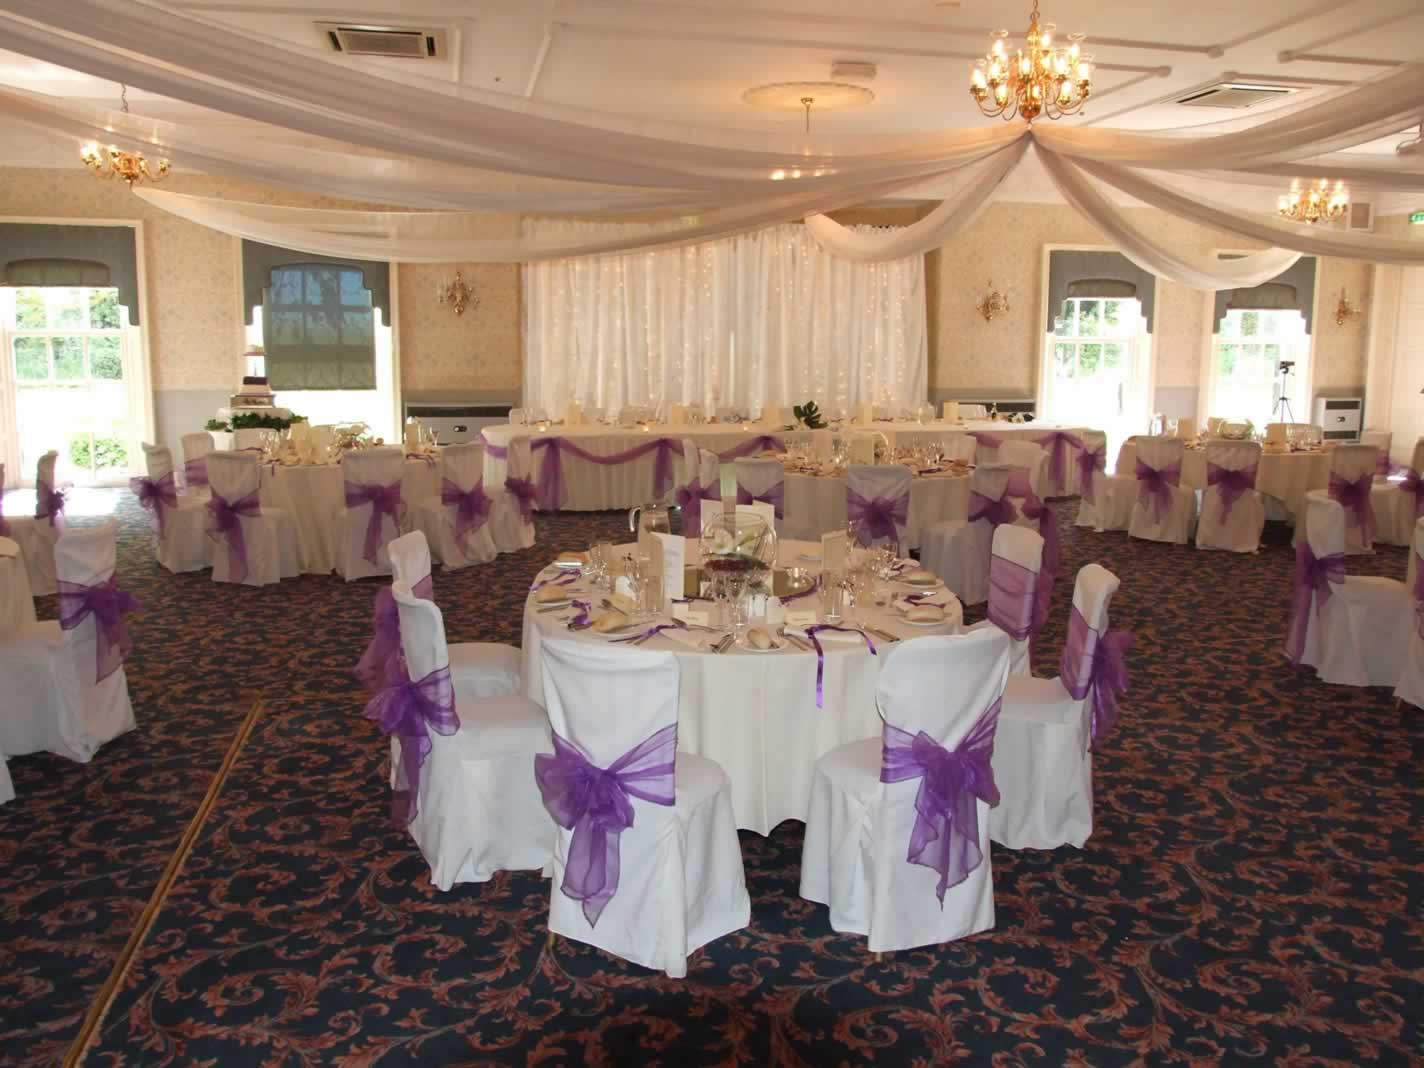 wedding chair covers warrington folding legs the uk company venue dresser